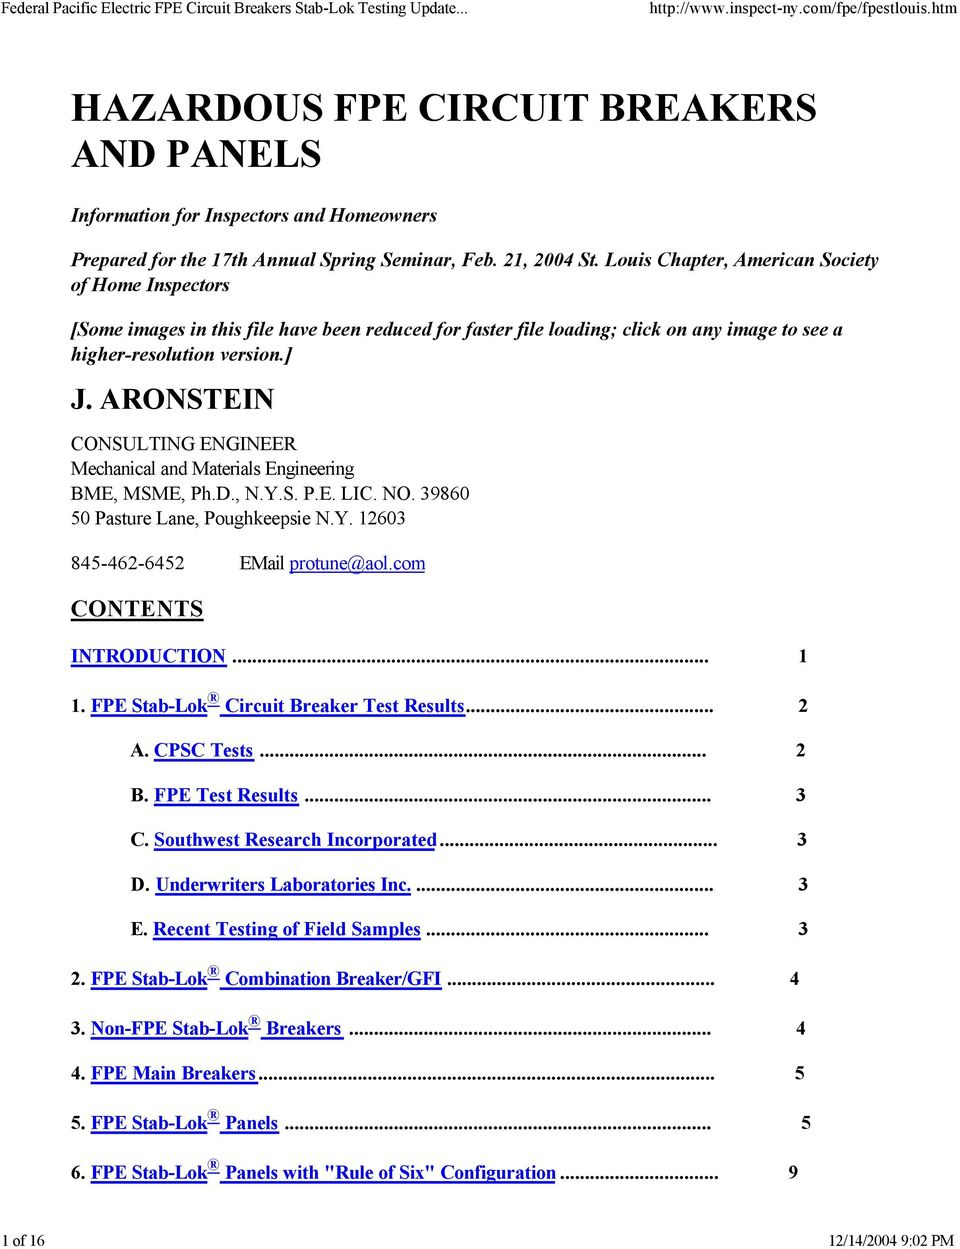 Hazardous Fpe Circuit Breakers And Panels Pdf Cpsc Aluminum Wiring Aronstein Consulting Engineer Mechanical Materials Engineering Bme Msme Phd